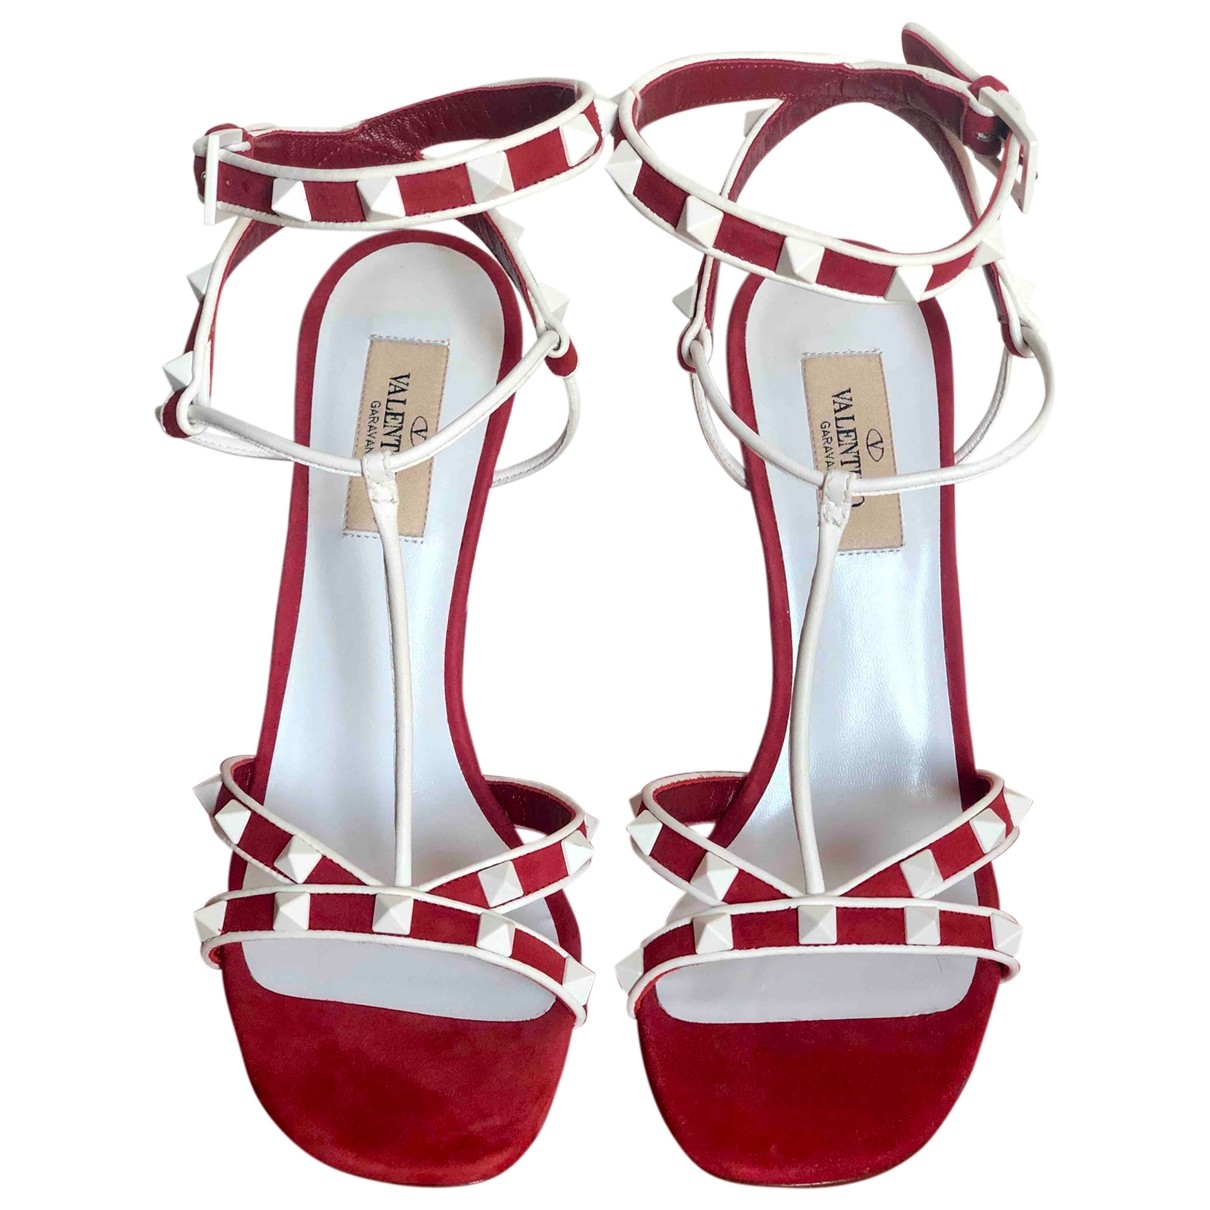 Valentino Garavani Rockstud Red Suede Sandals for Women 38 EU